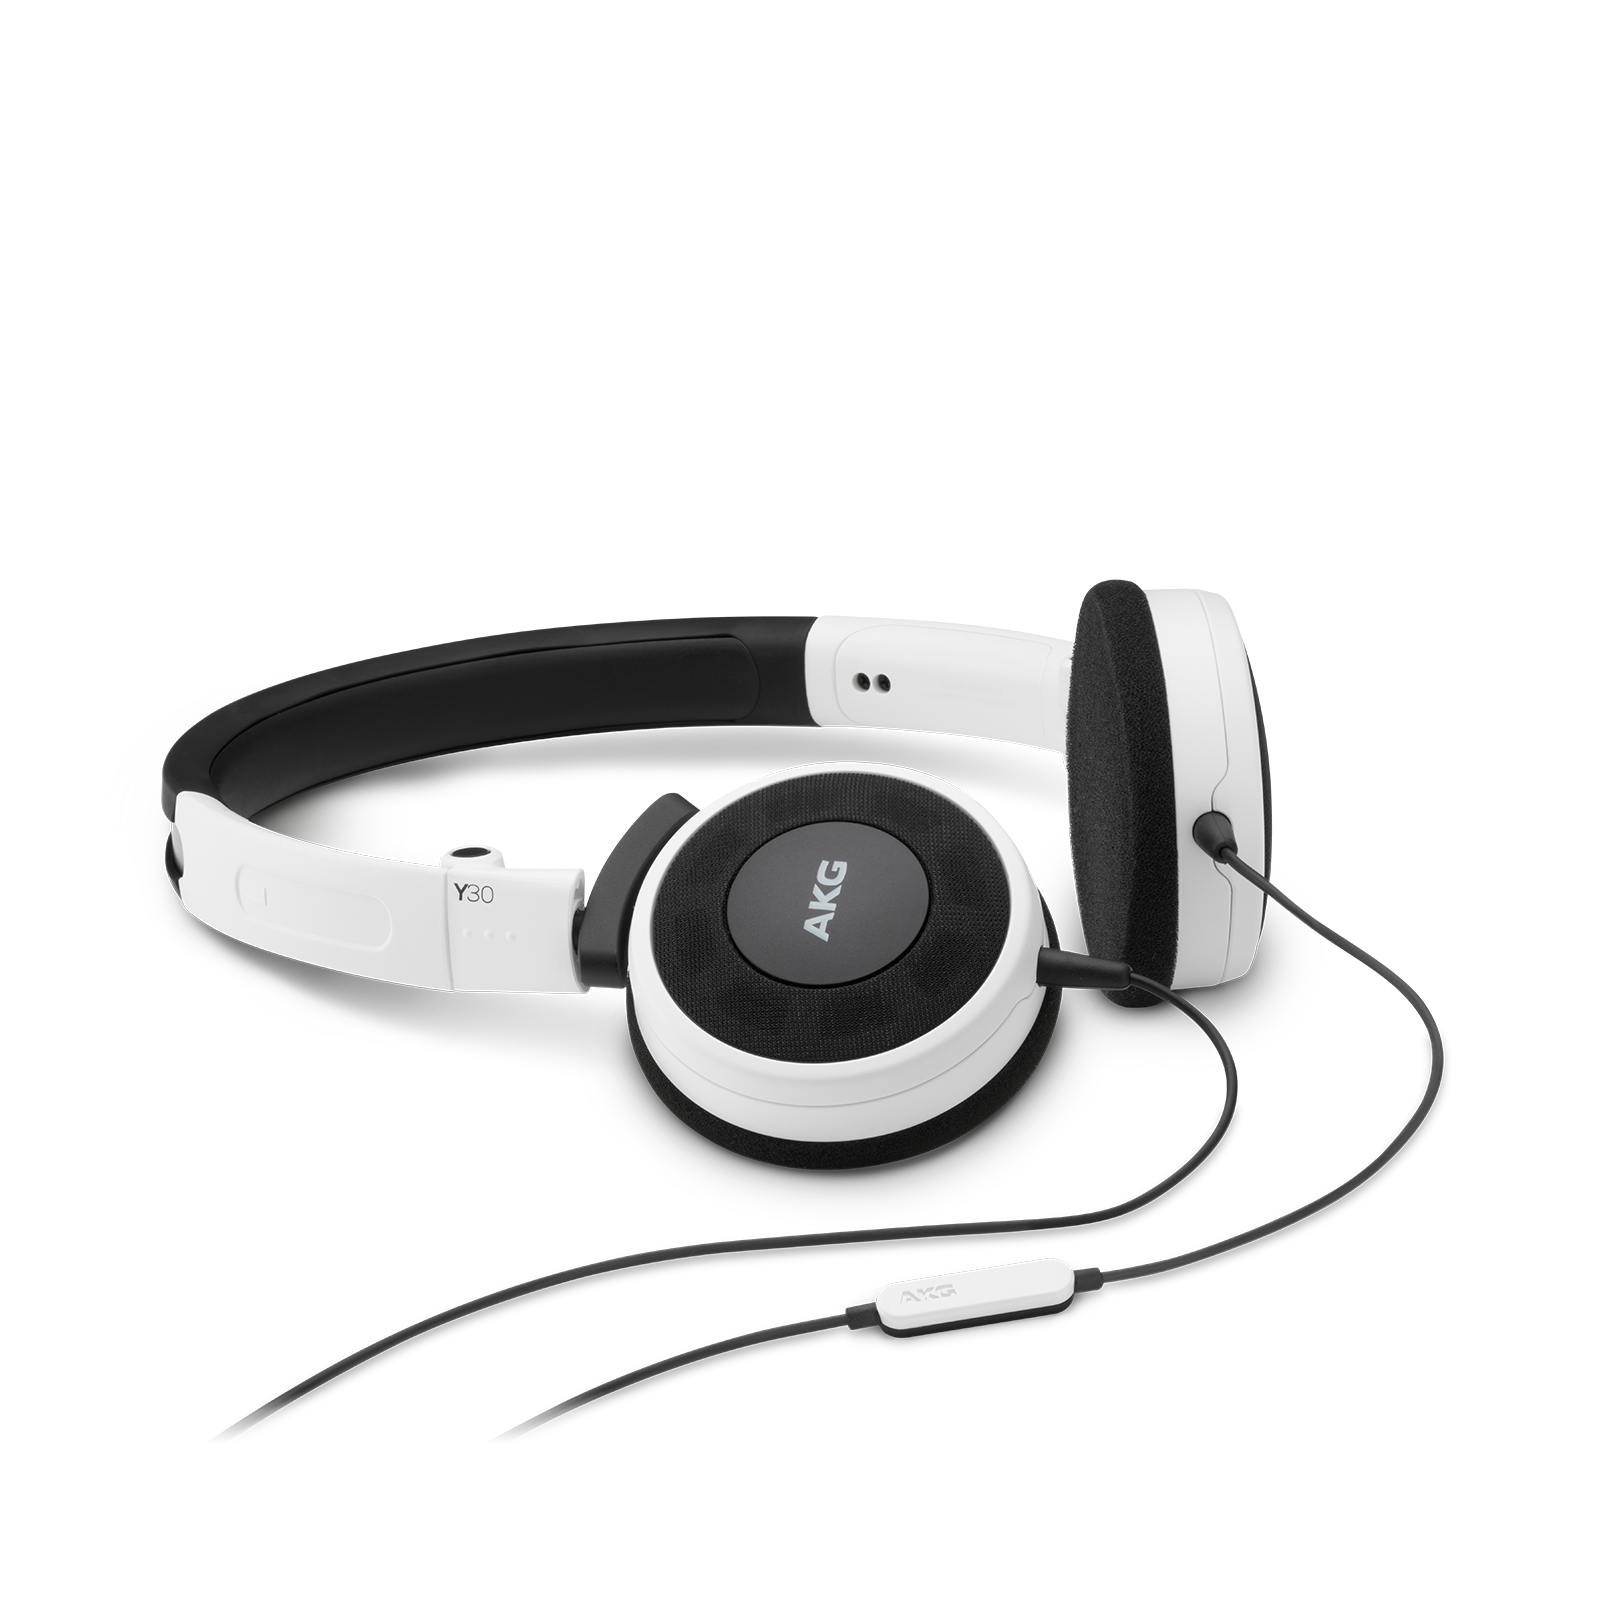 Y 30 - White - Stylish, uncomplicated, foldable headphones with 1 button universal remote/mic - Hero